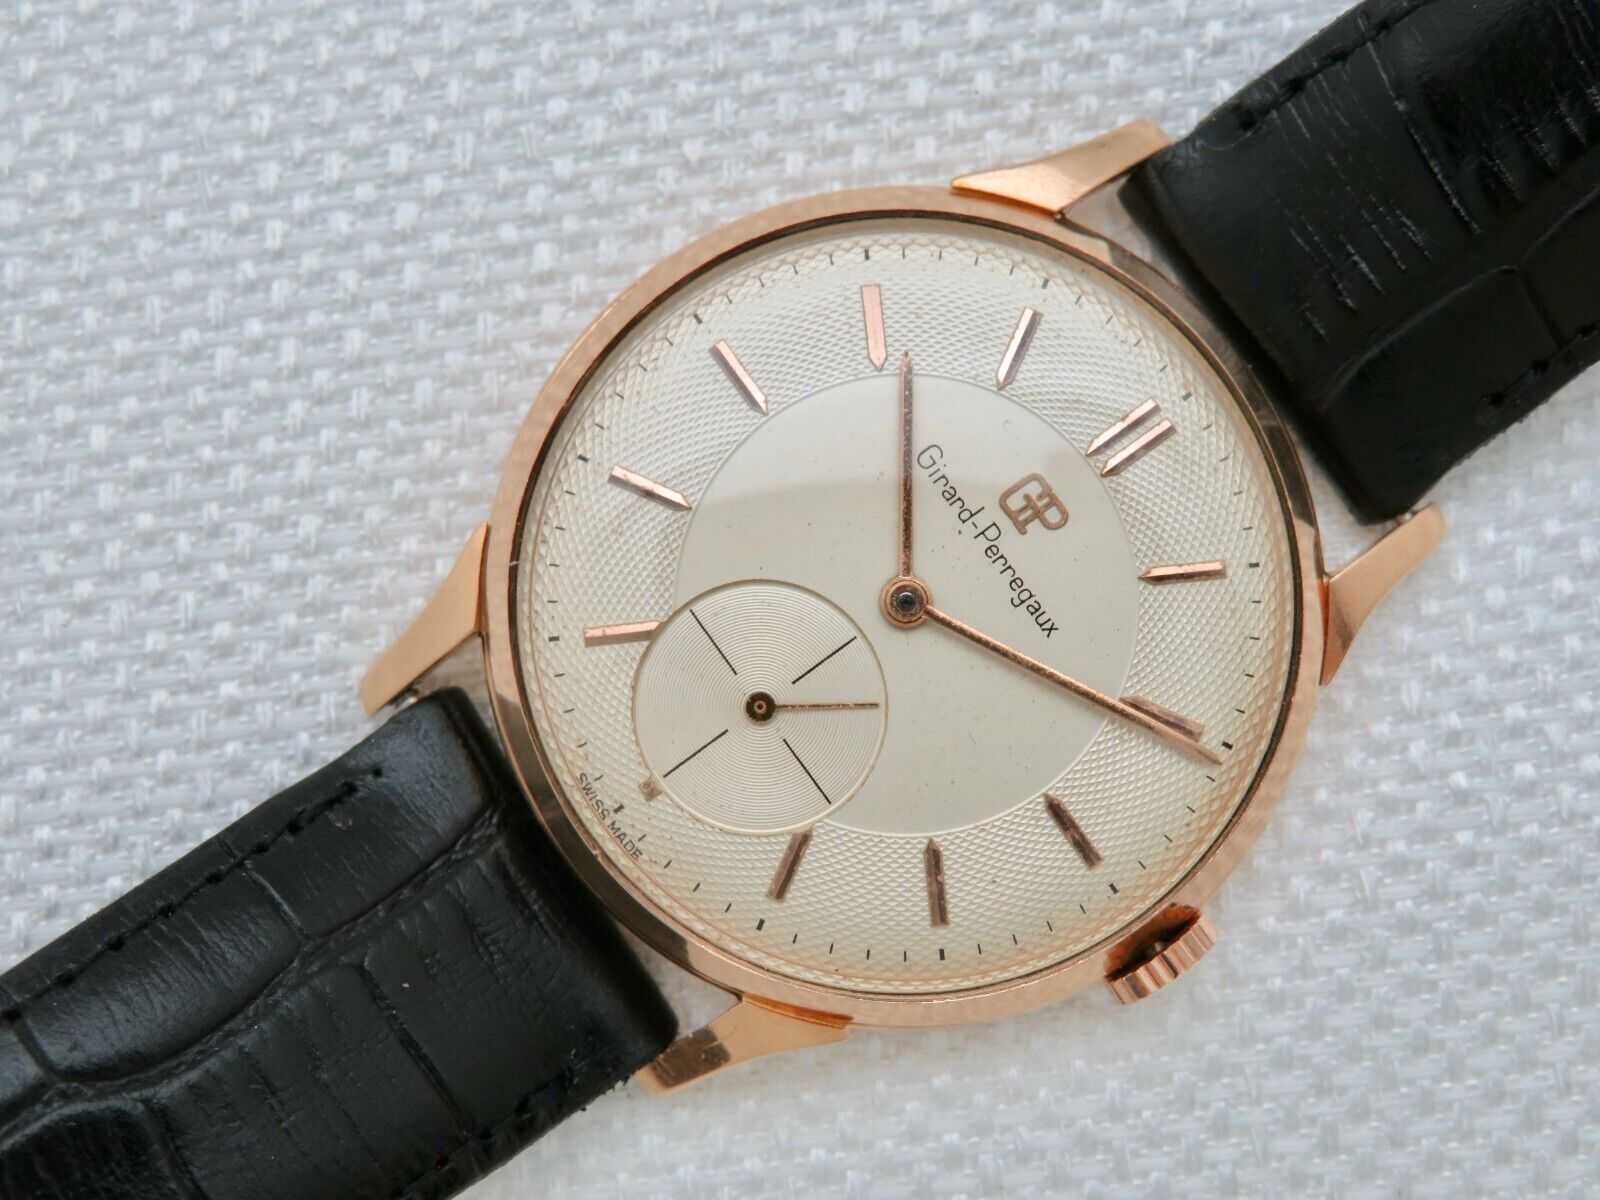 Mens Vintage Girard Perregaux 18K Solid Rose Gold 37mm Manual Wind Wristwatch - watch picture 1